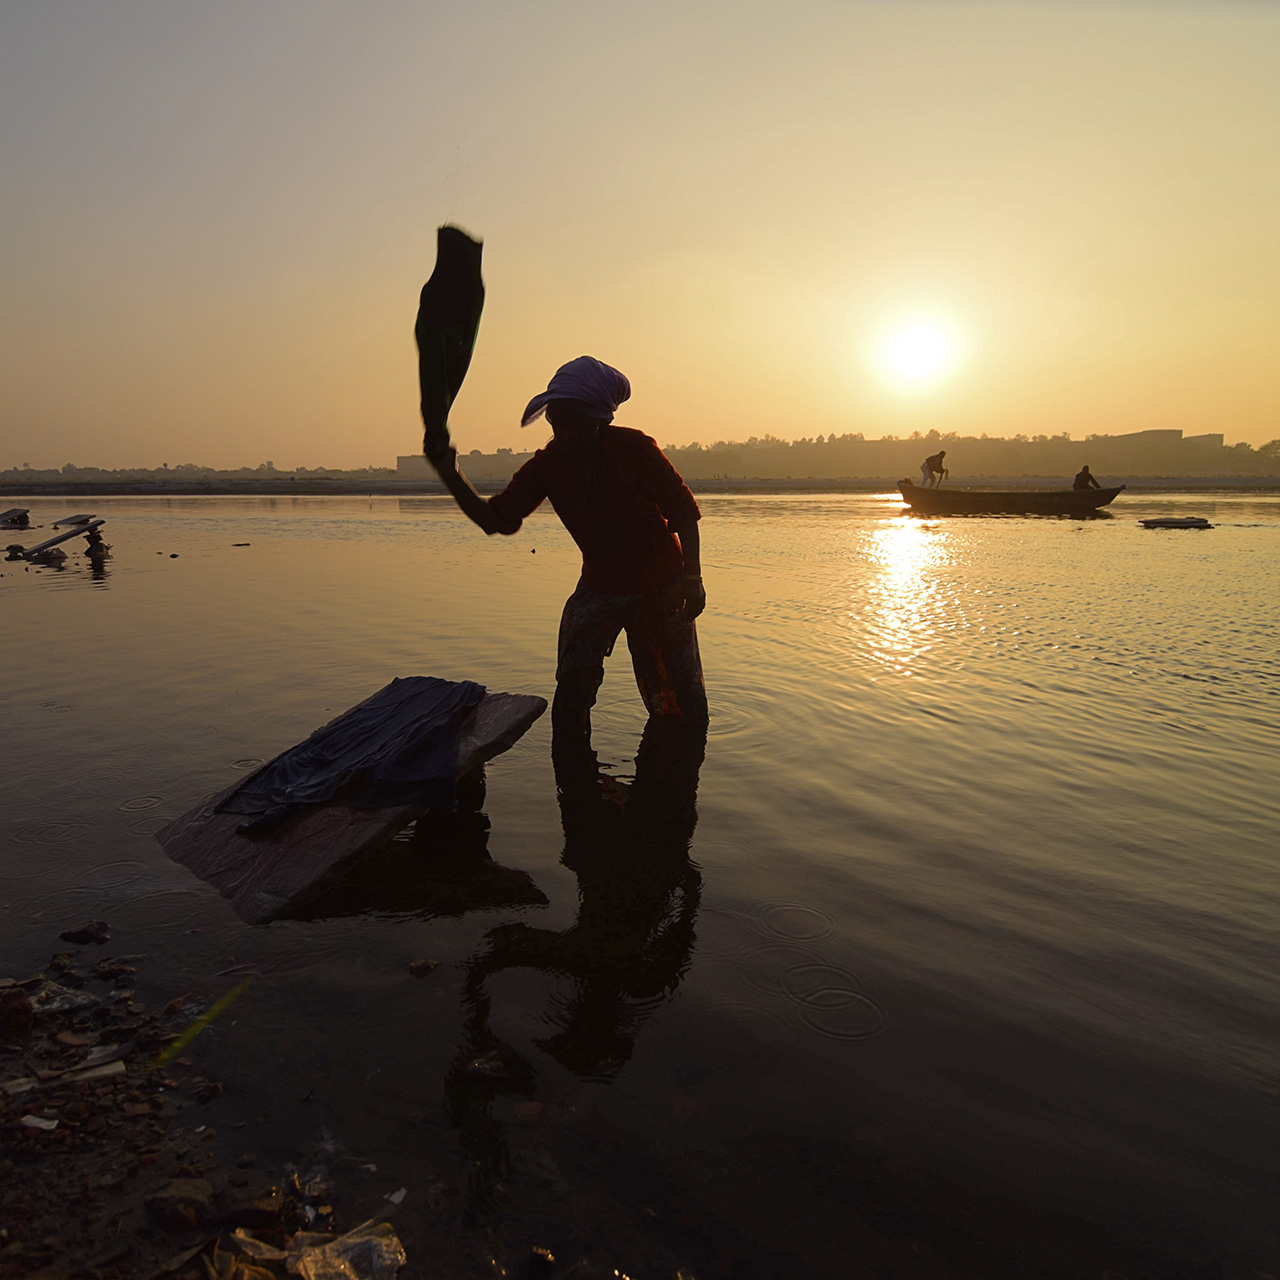 A woman washed clothing at Dhobi ghat on the Yamuna River near the Taj Mahal, Agra, India.  Photo © Jake Norton.